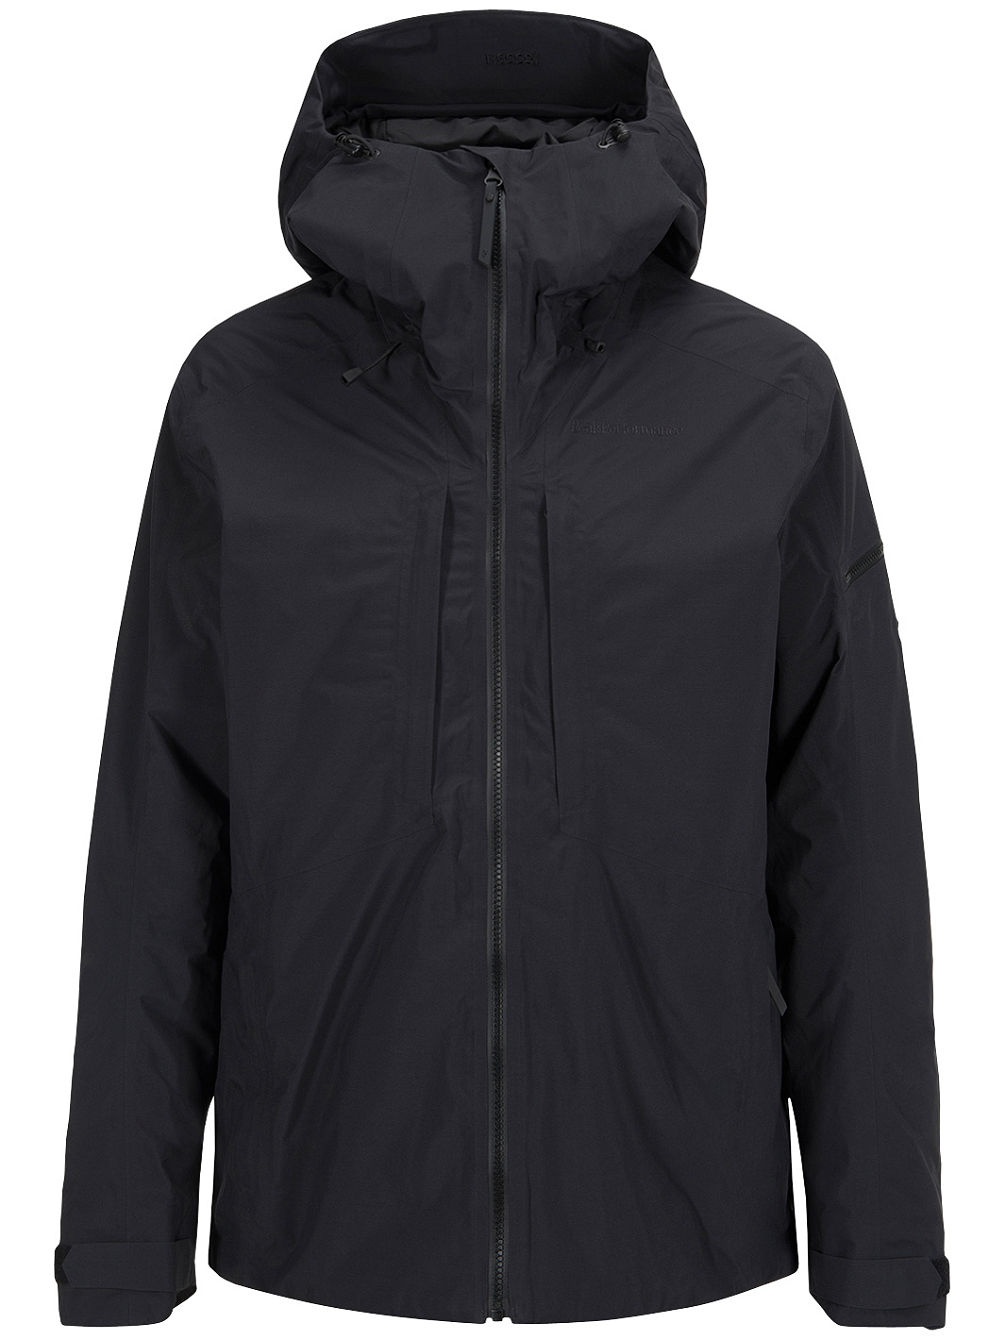 Teton 2Layer Jacket